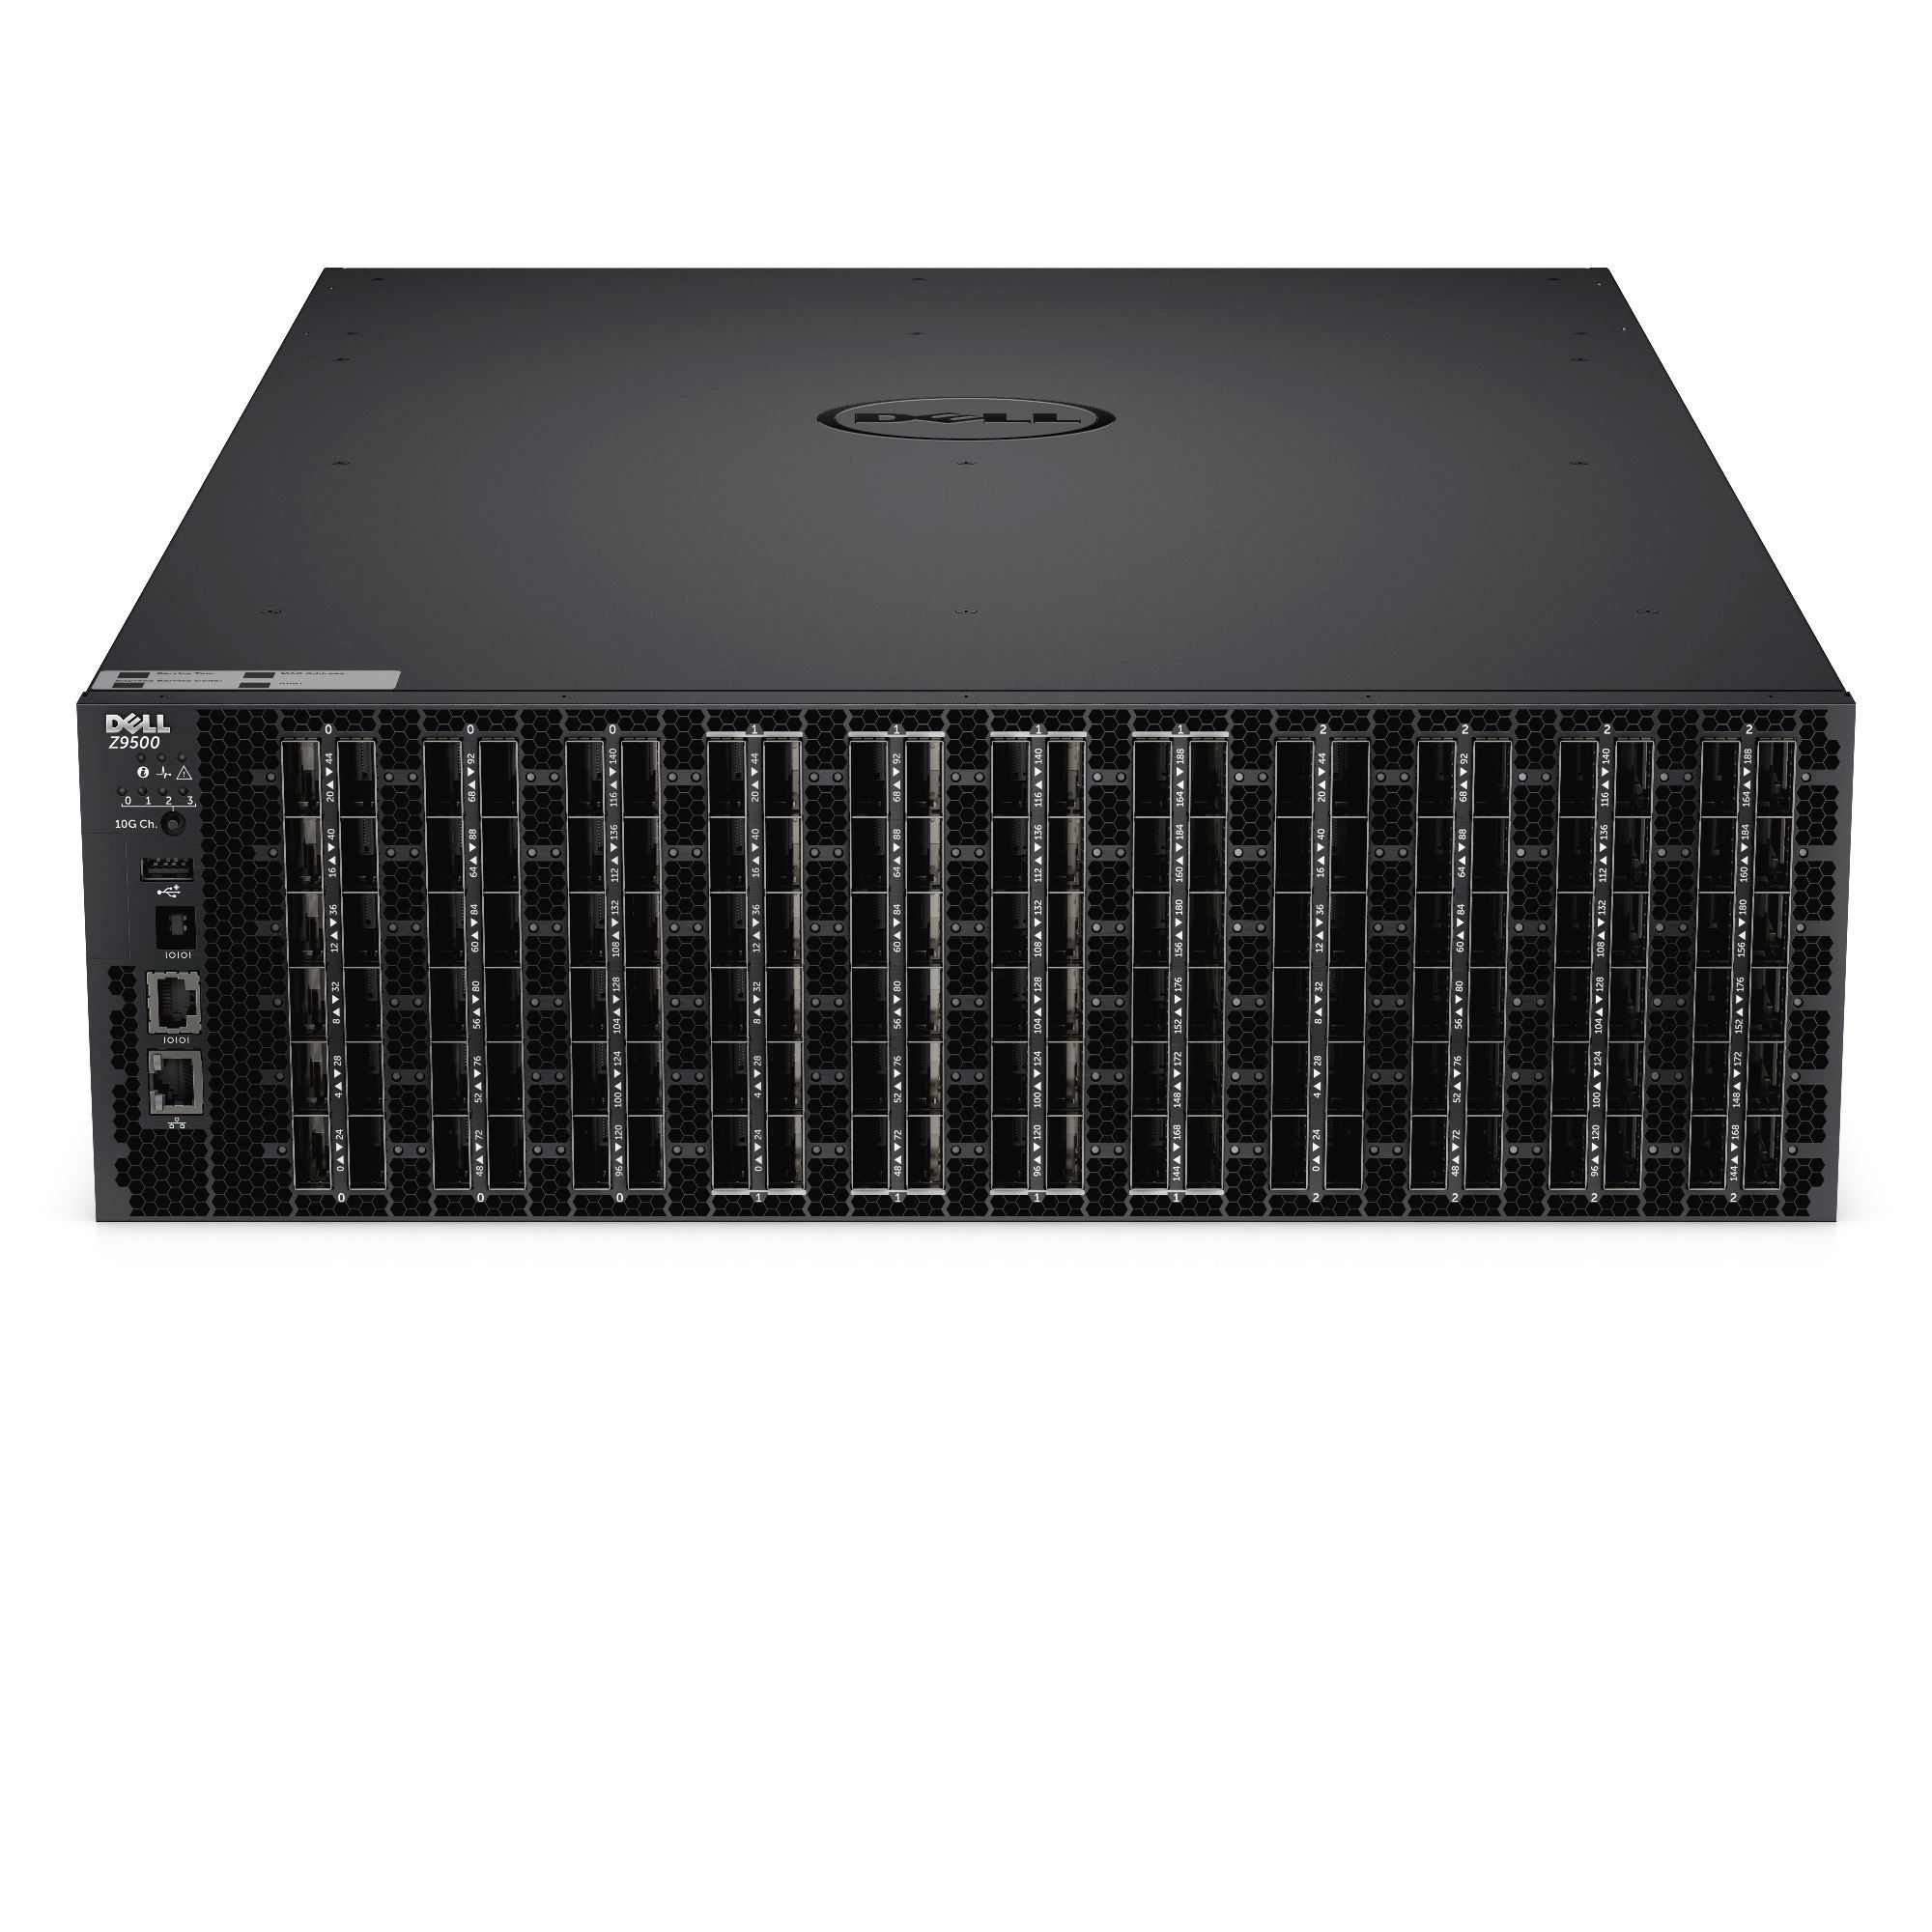 Dell Networking Z-series (Model Z9500) Switch.